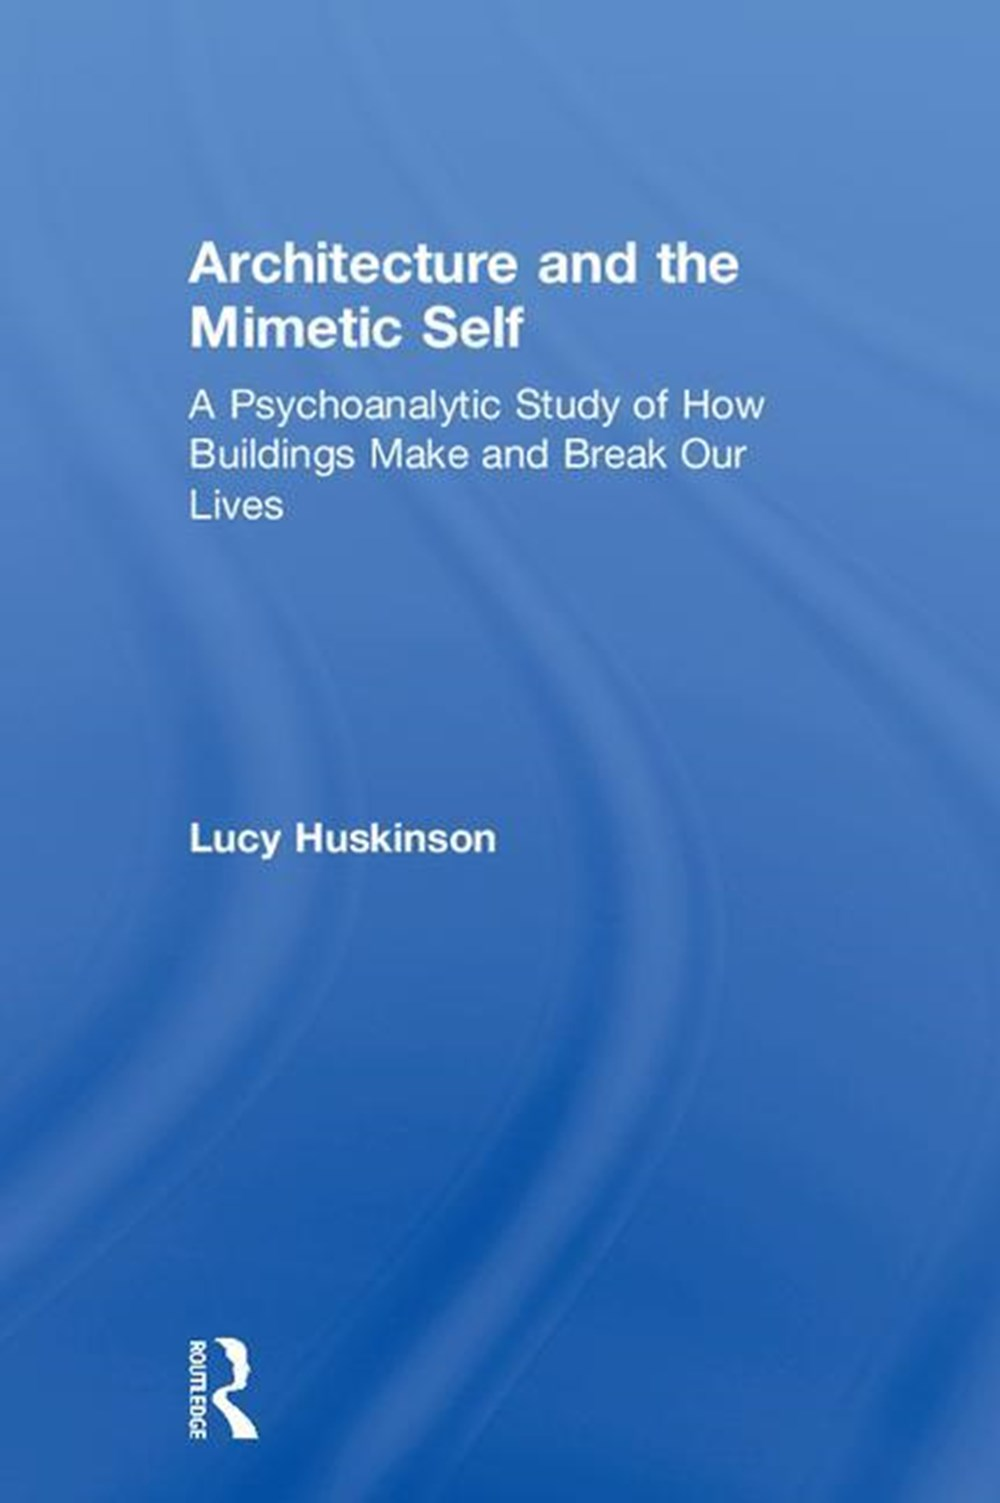 Architecture and the Mimetic Self A Psychoanalytic Study of How Buildings Make and Break Our Lives